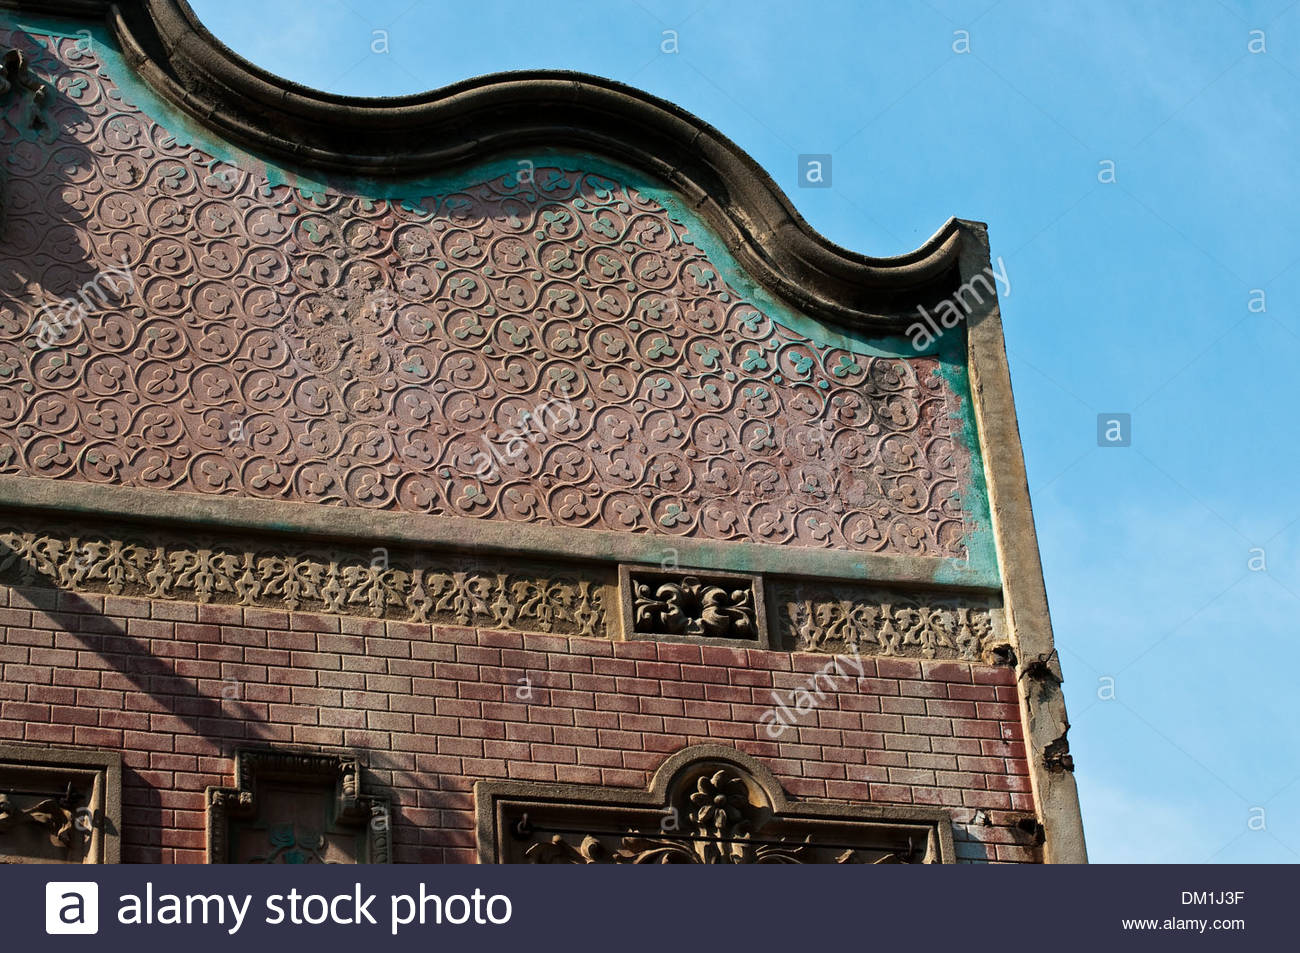 Gable of an early 20th century house, Barcelona, Catalonia, Spain - Stock Image